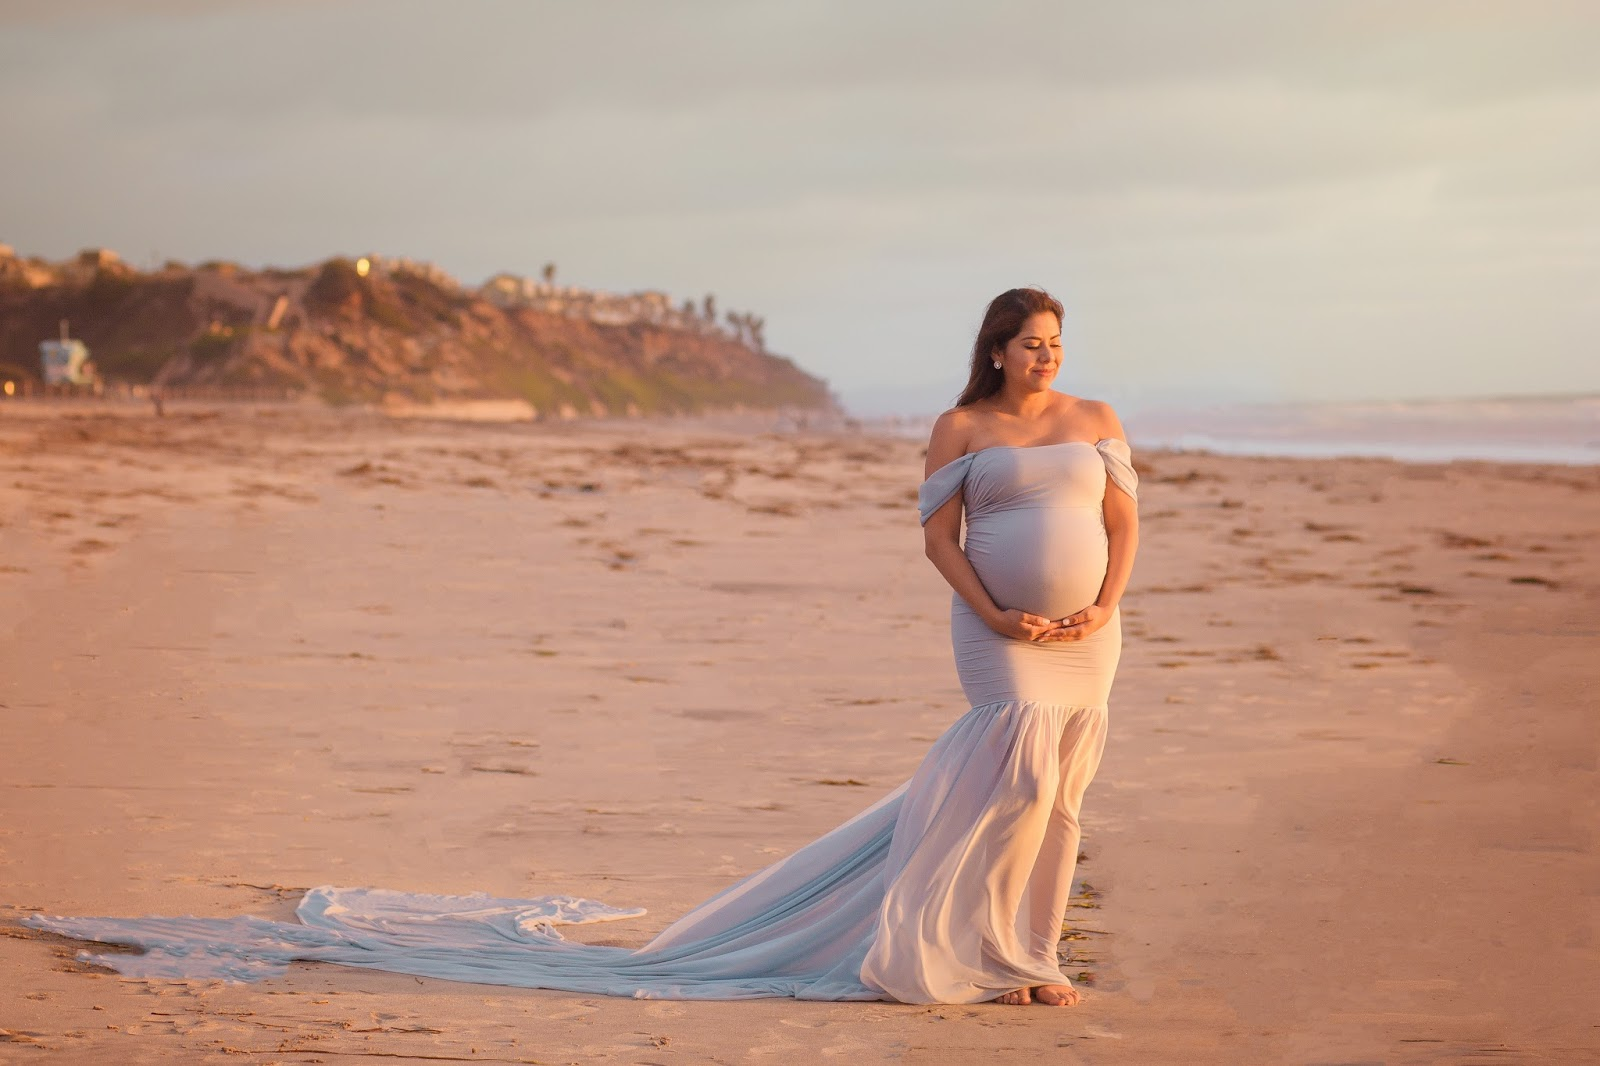 Maternity shoot in so cal, romantic maternity shoot, maternity photo session by the beach